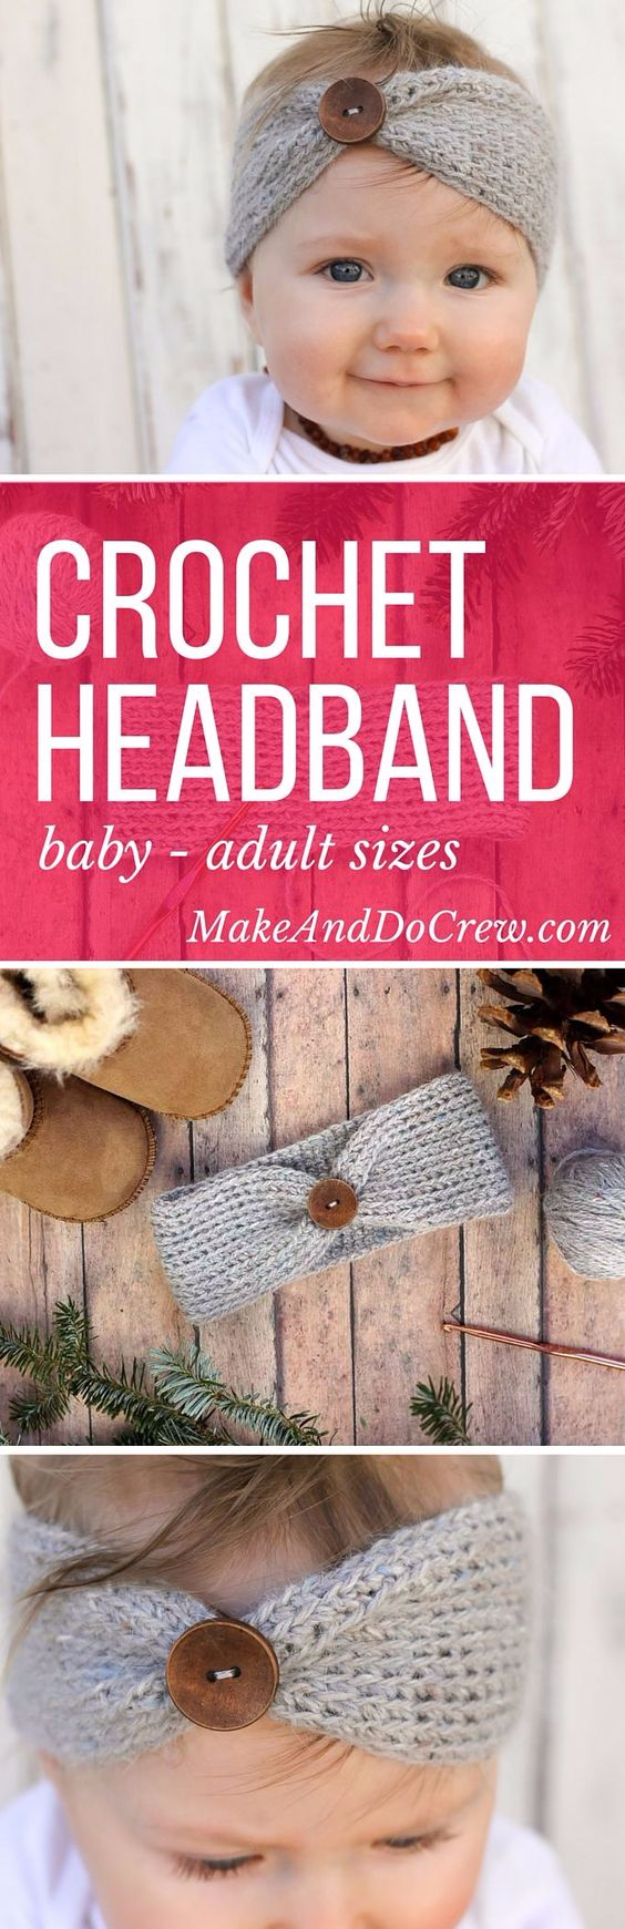 DIY Gifts for Babies - Crochet Baby Headband - Best DIY Gift Ideas for Baby Boys and Girls - Creative Projects to Sew, Make and Sell, Gift Baskets, Diaper Cakes and Presents for Baby Showers and New Parents. Cool Christmas and Birthday Ideas http://diyjoy.com/diy-gifts-for-baby